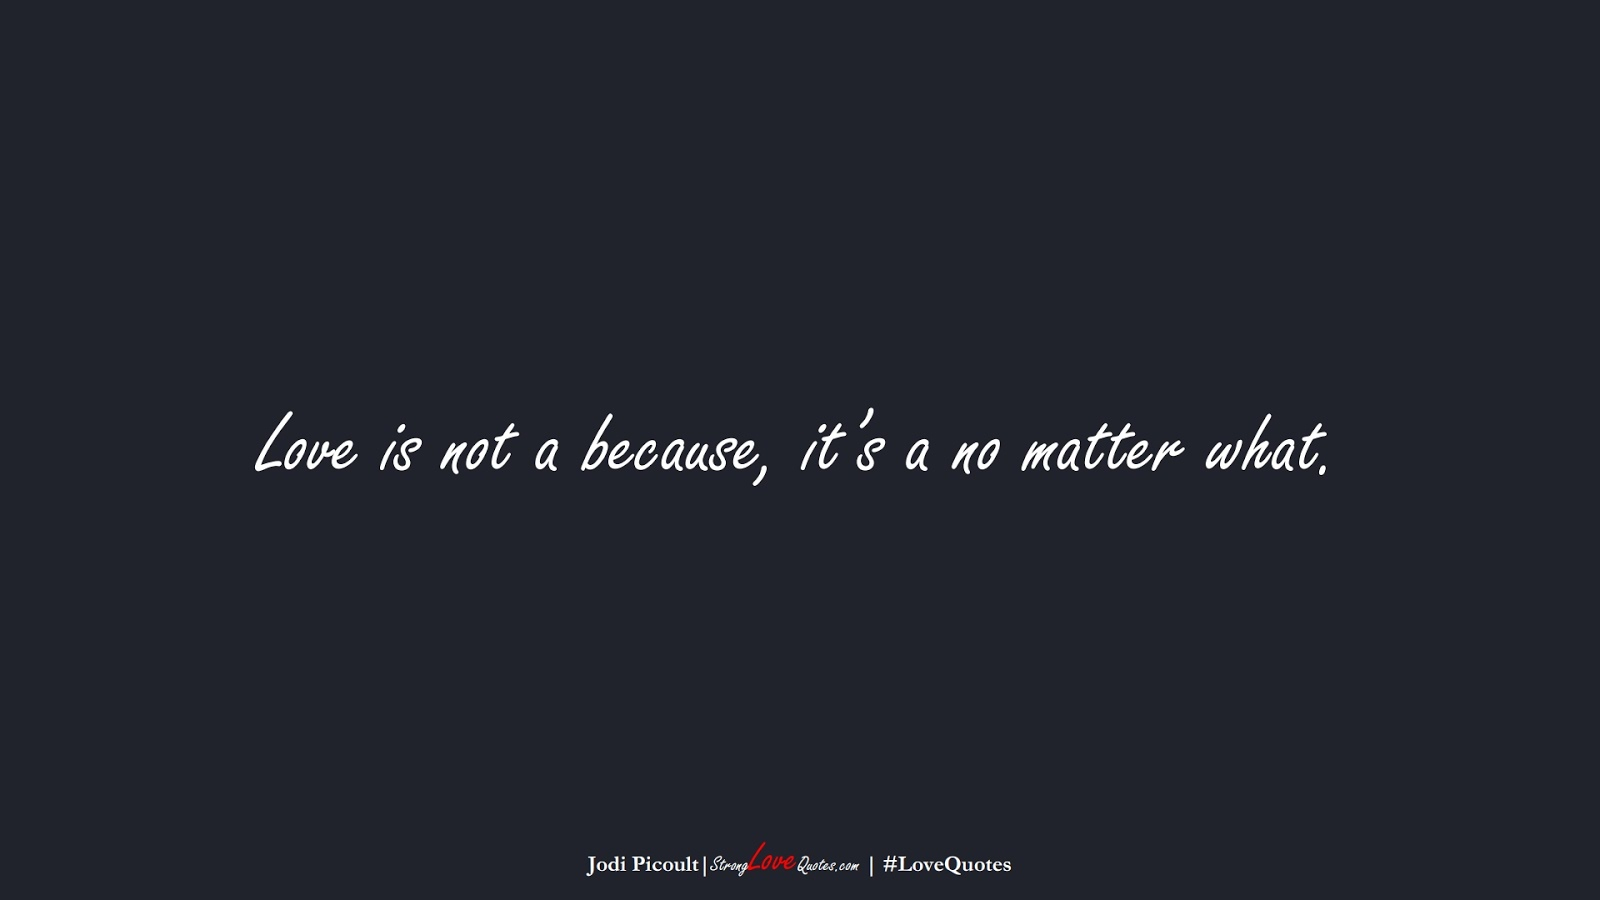 Love is not a because, it's a no matter what. (Jodi Picoult);  #LoveQuotes